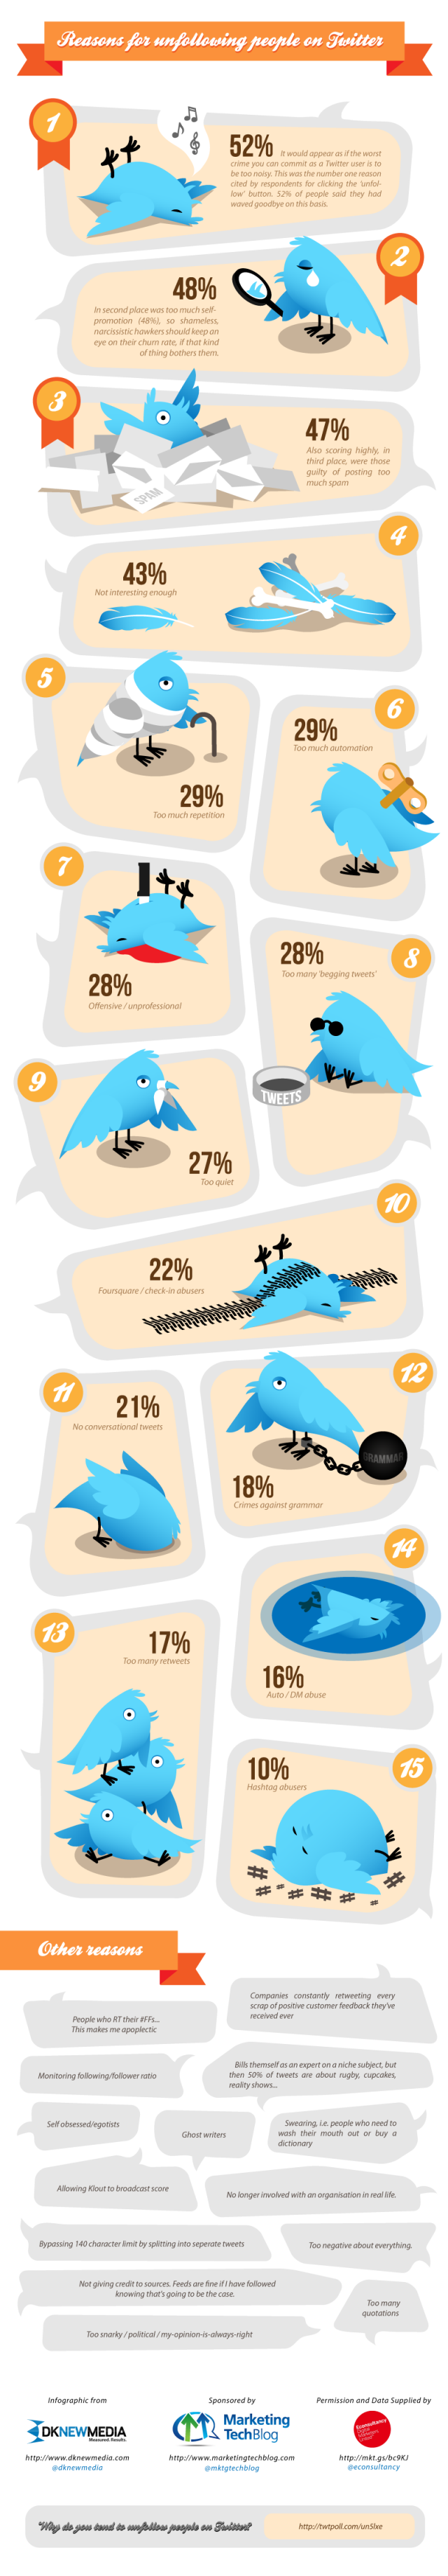 unfollow-twitter-infographic